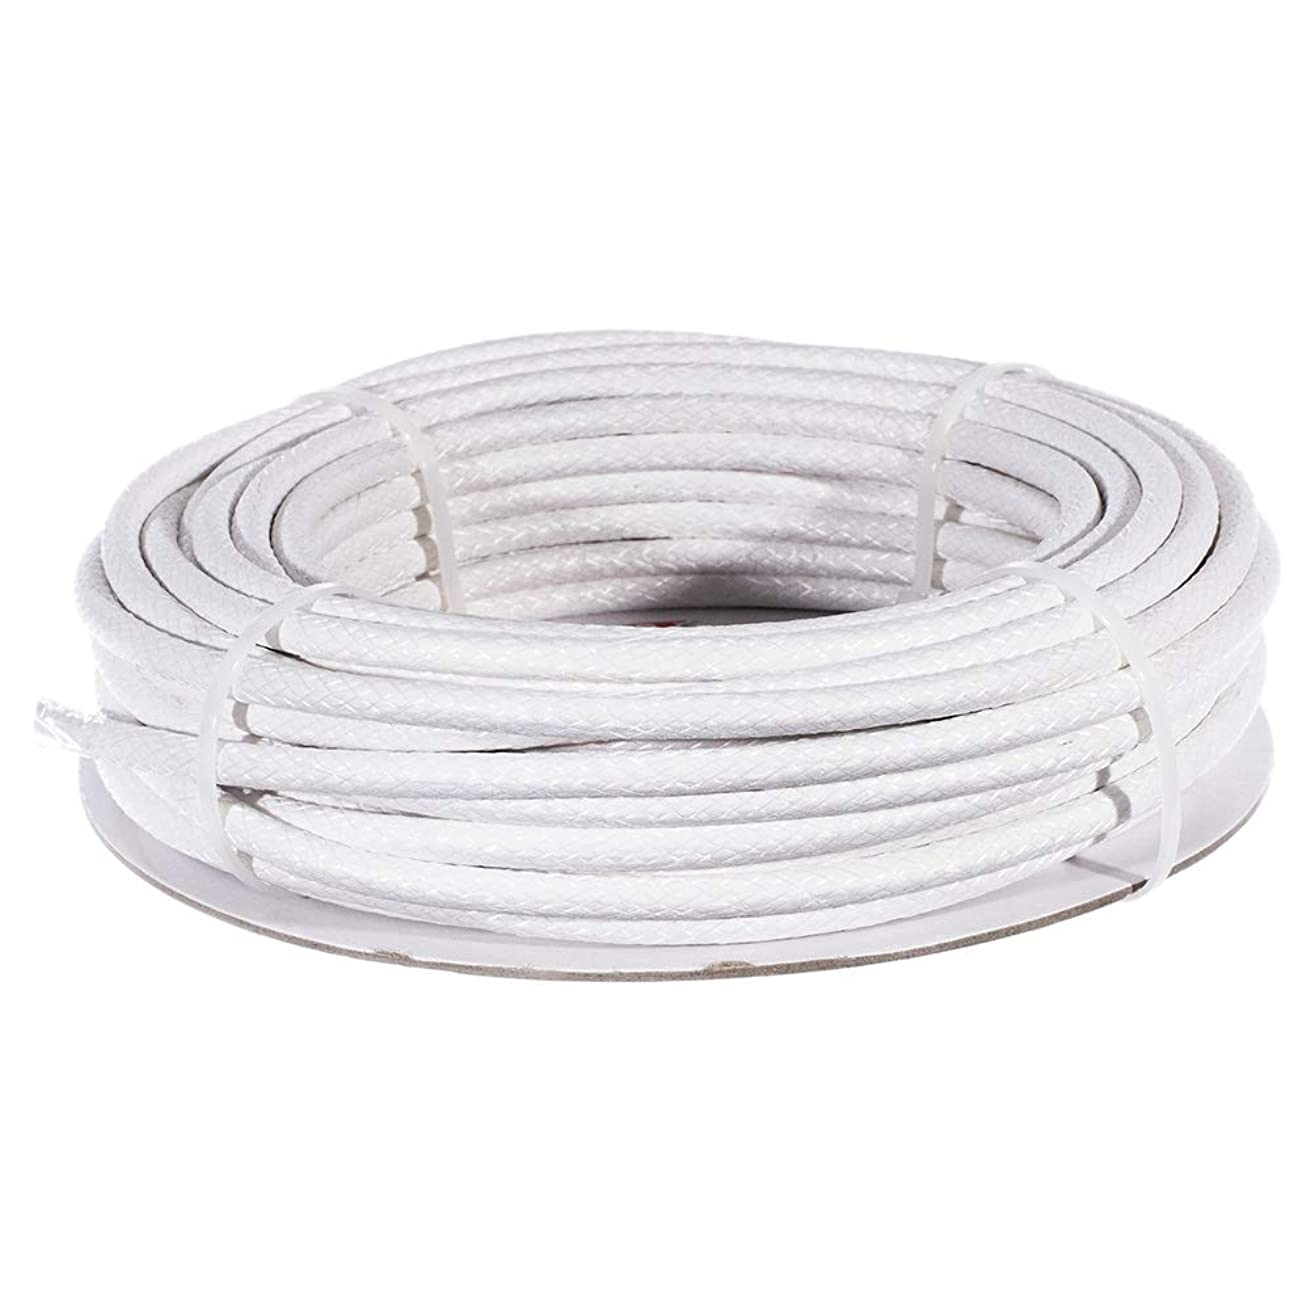 Craft County - 1/4 Inch (6.35 MM) Coiling Cord - Available in 50 Feet (15.24 M), 180 Feet (54.9 M)